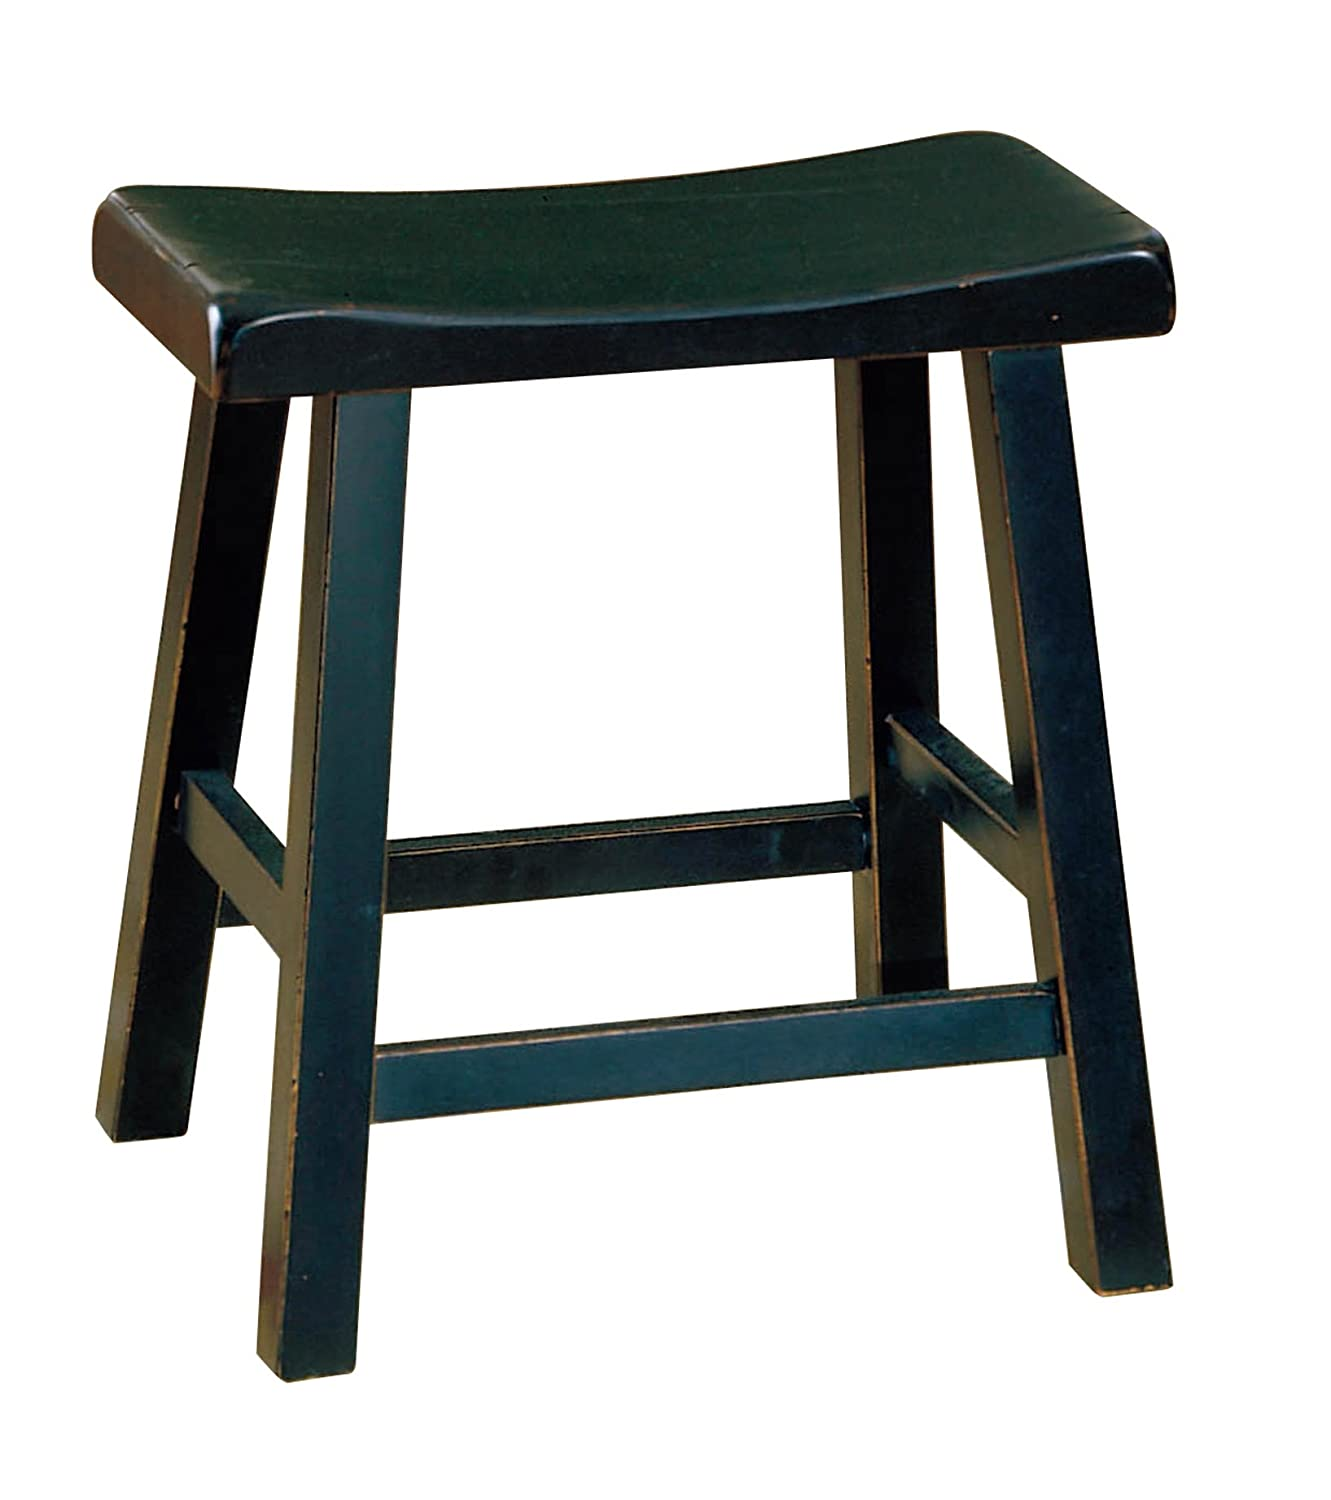 Amazon.com Homelegance 5302BK-18 Saddleback 18-Inch Barstool Kitchen u0026 Dining  sc 1 st  Amazon.com : 18 inch saddle stool - islam-shia.org